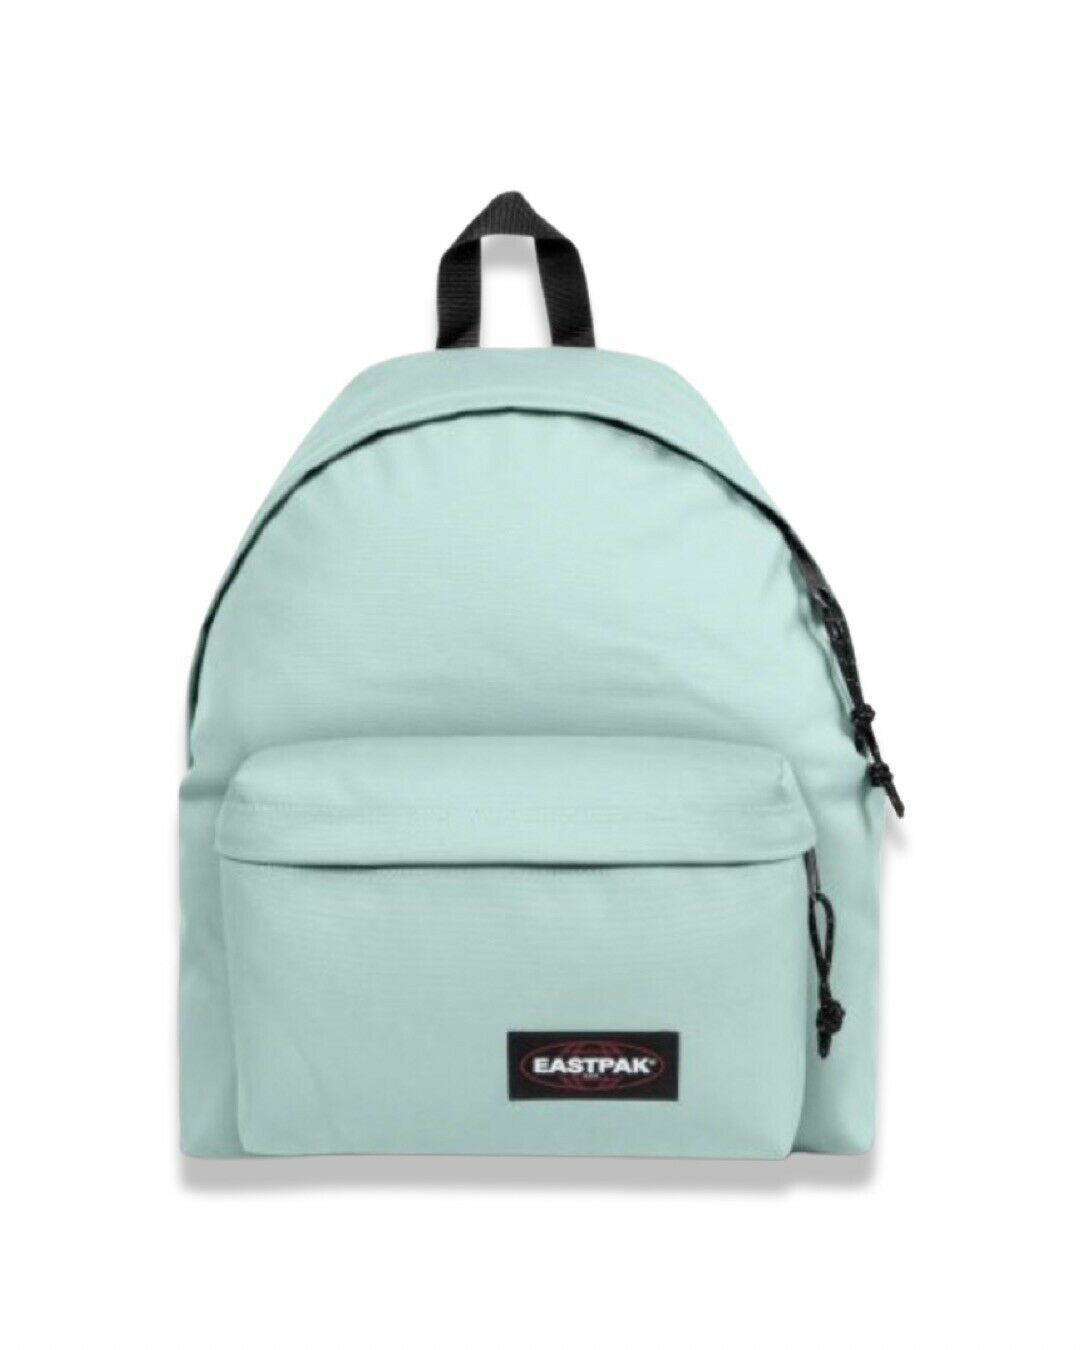 EASTPACK Out Of Office Backpack EK767-01X 27L Mint with Laptop Compartment NWT